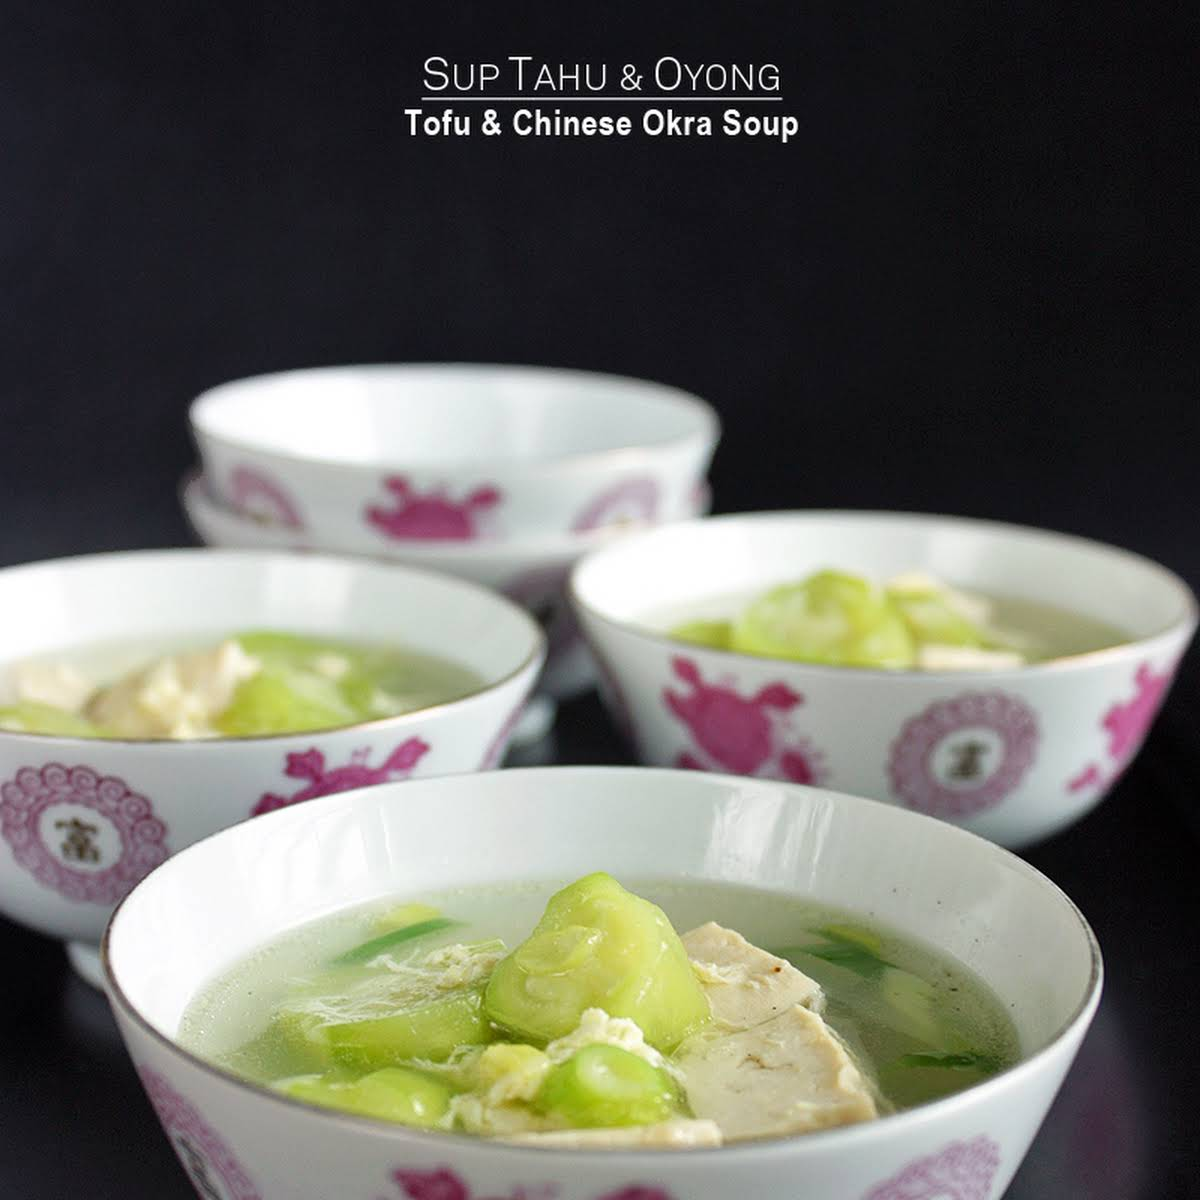 Sup Tahu dan Oyong - Tofu and Chinese Okra Soup